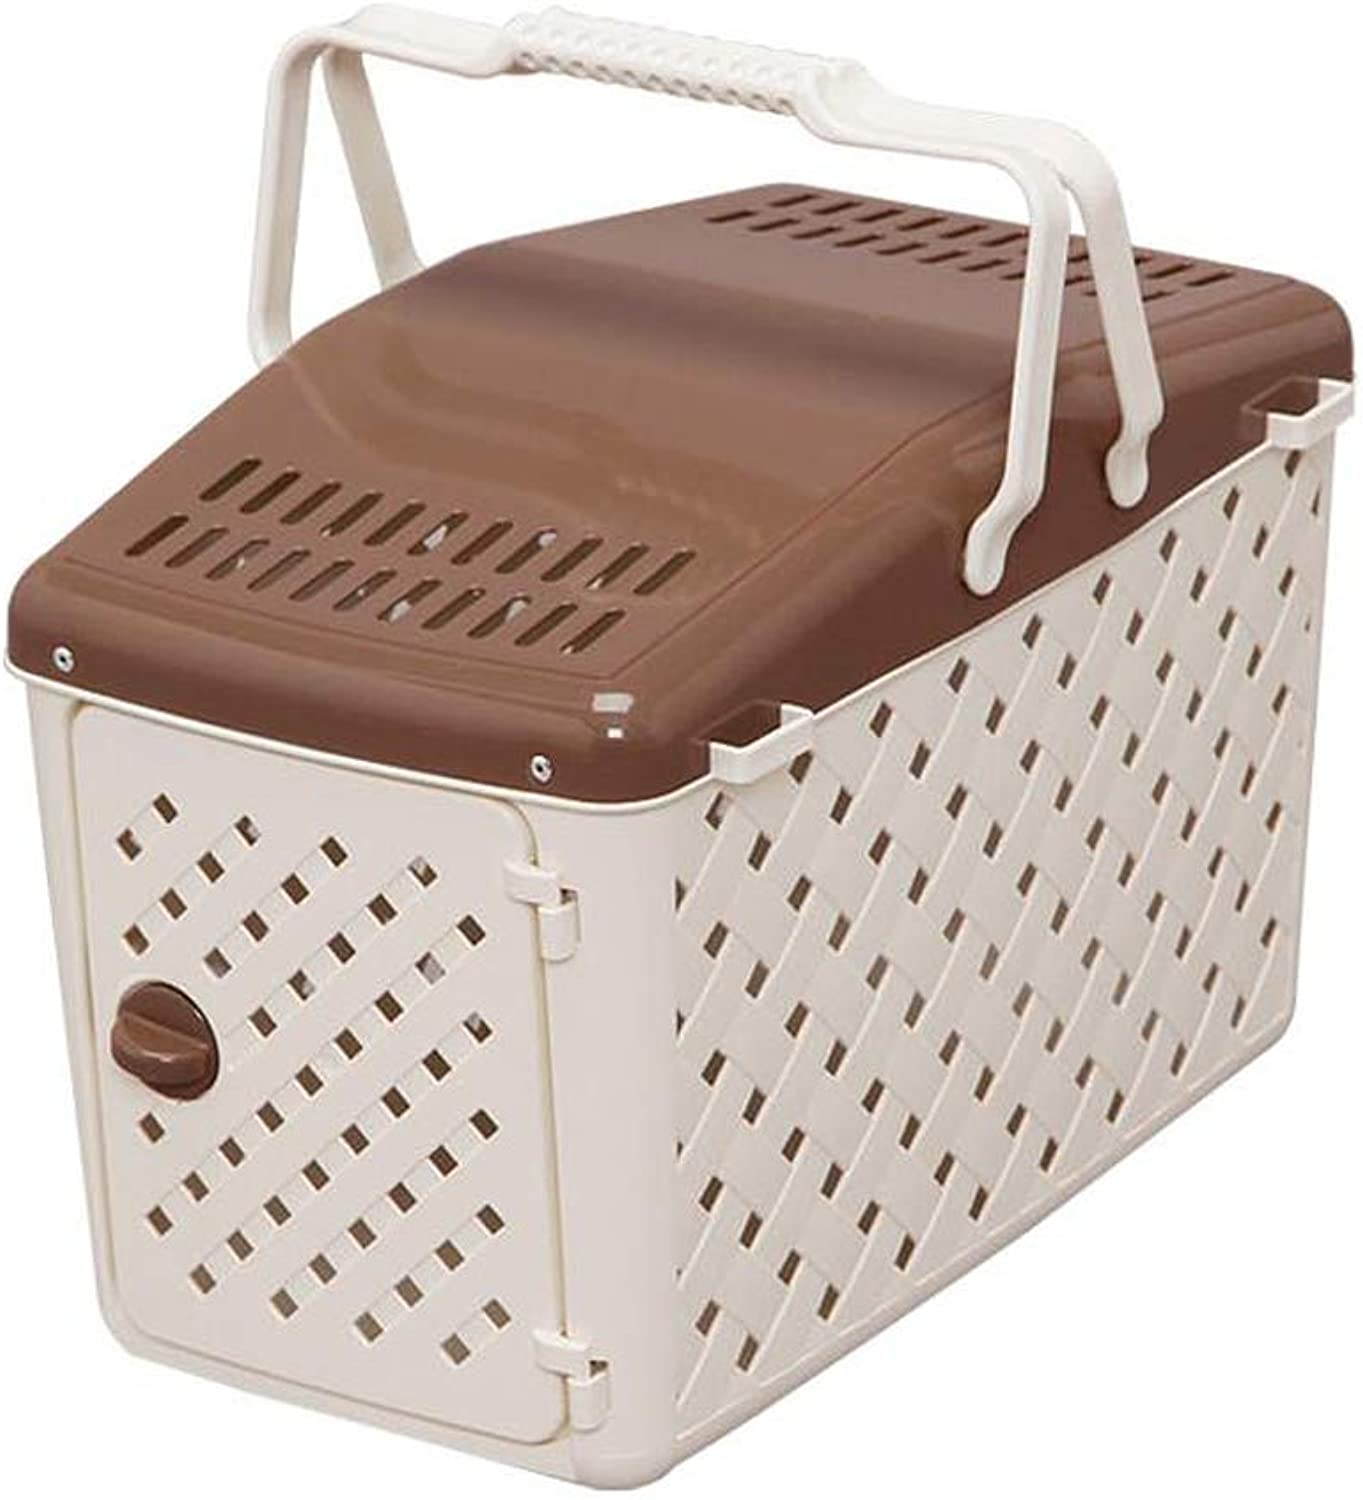 Pet bag Cat Teddy Out Of The Cat Cage Dog Bag Cat Alice Portable Cage Lostgaming (color   Brown)